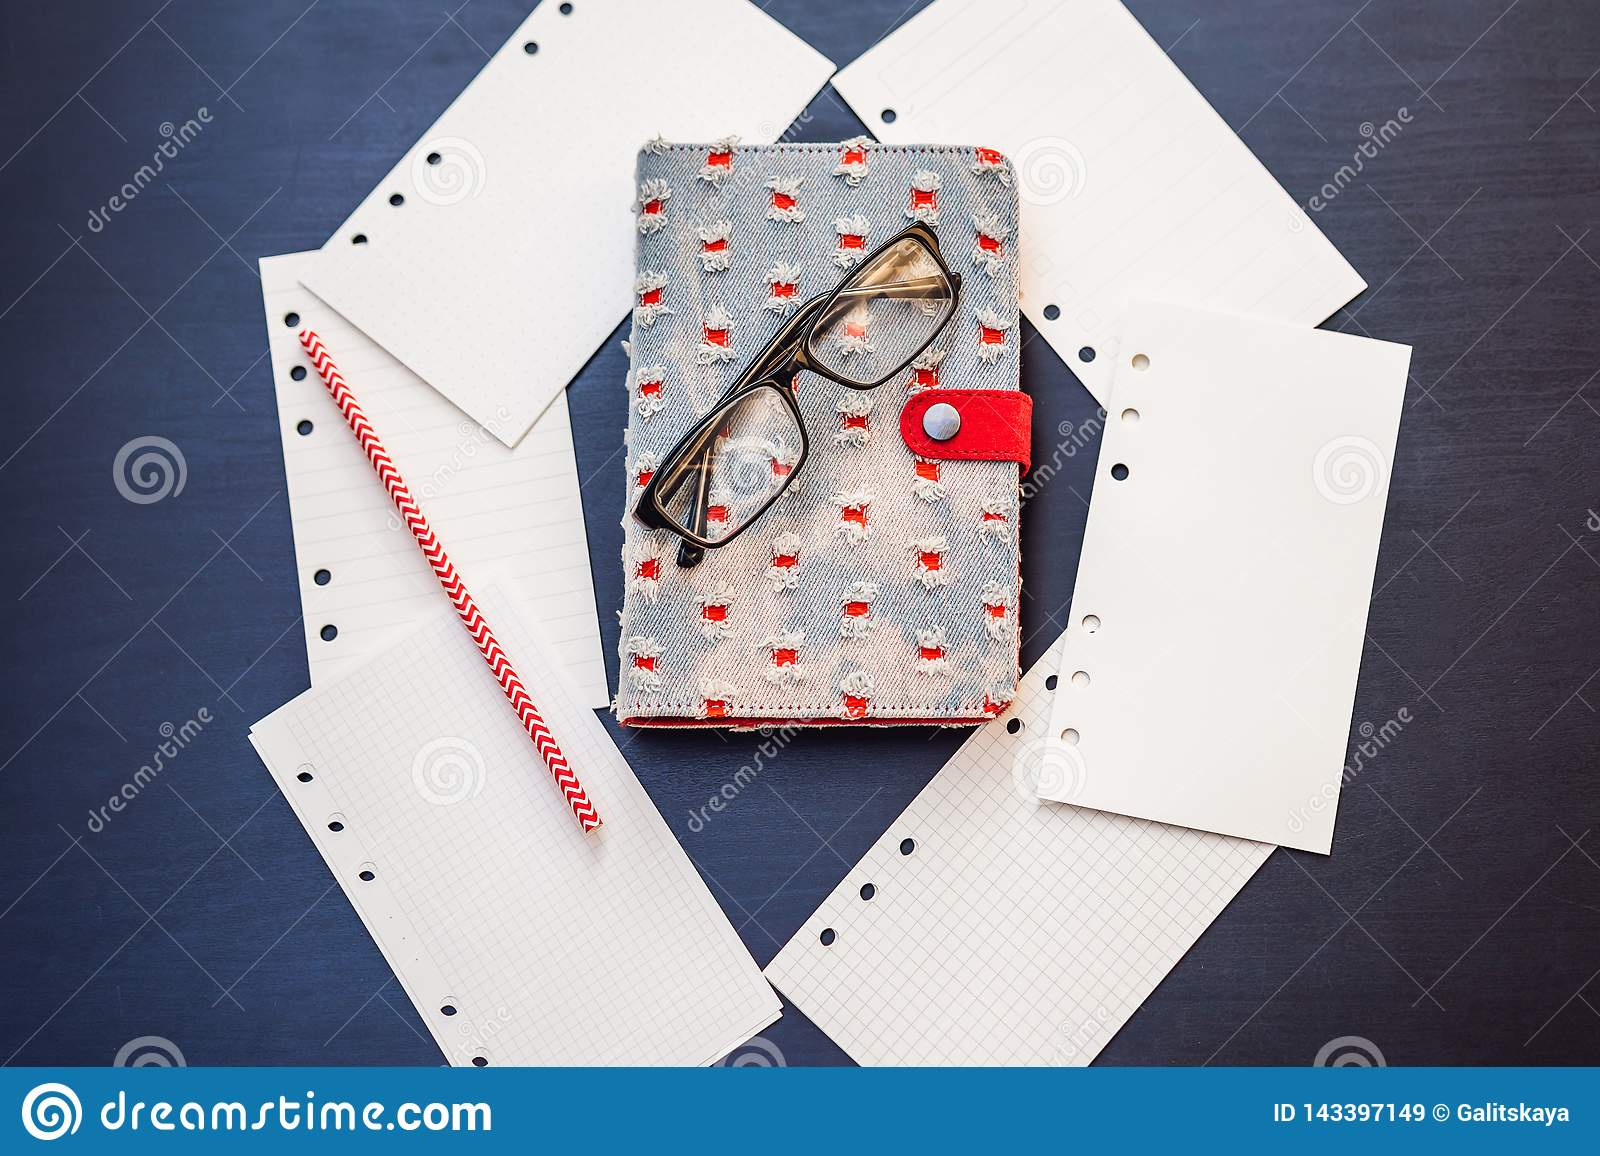 Notepad and stationery on a black background. Planner for business and study. Fans of stationery